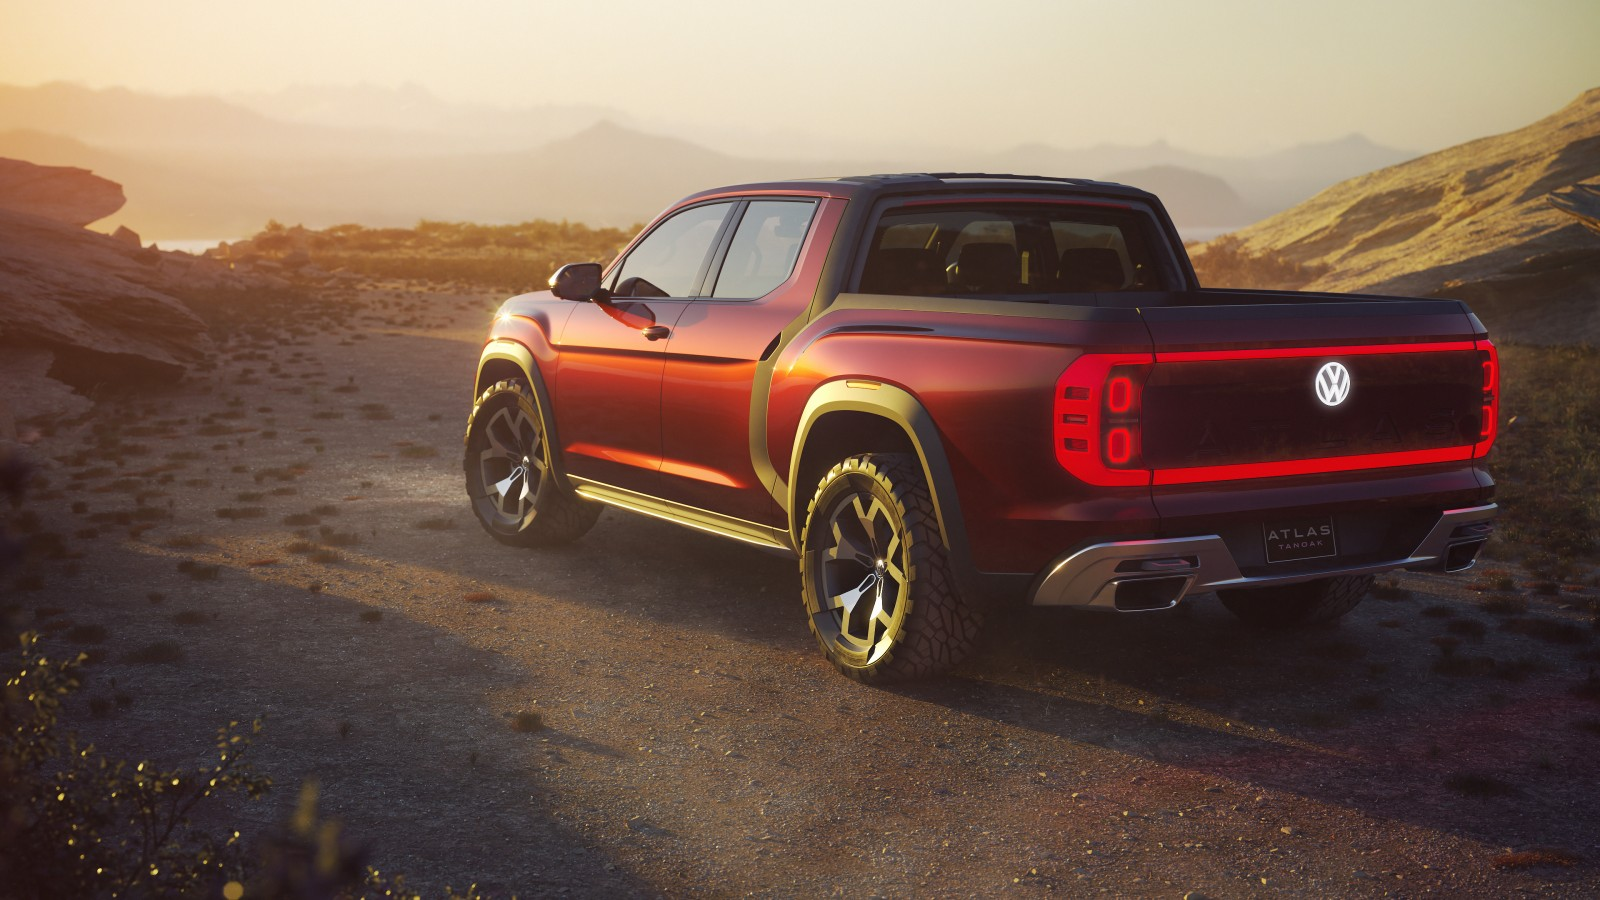 2018 Volkswagen Atlas Tanoak Pickup Truck Concept 4K 3 Wallpaper | HD Car Wallpapers | ID #10088